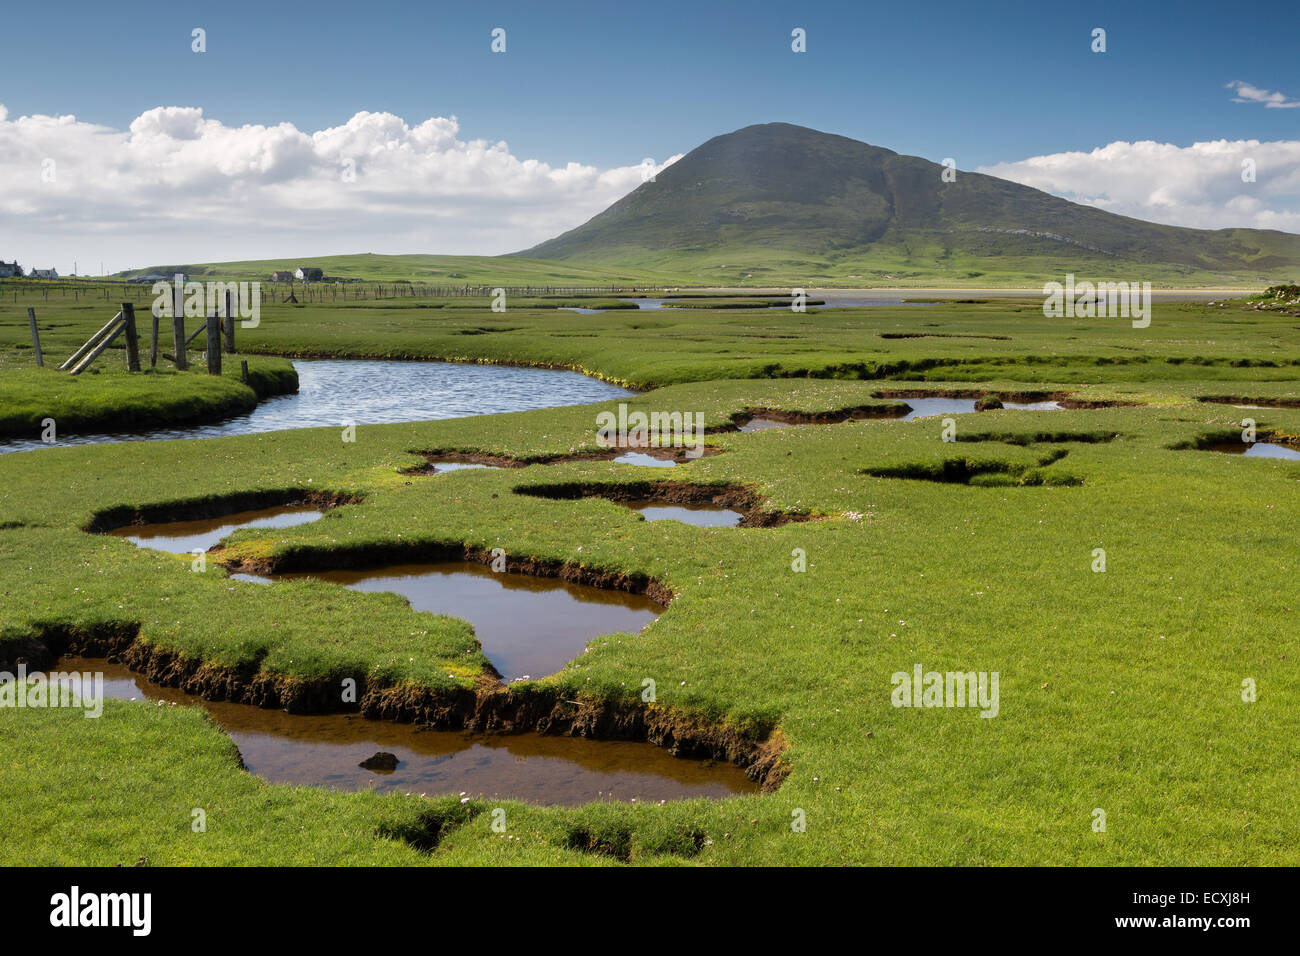 Ceapabhal hill and tital inlets or saltings at An Taobh Tuath or Northton on the Isle of Harris, Scotland. Stock Photo